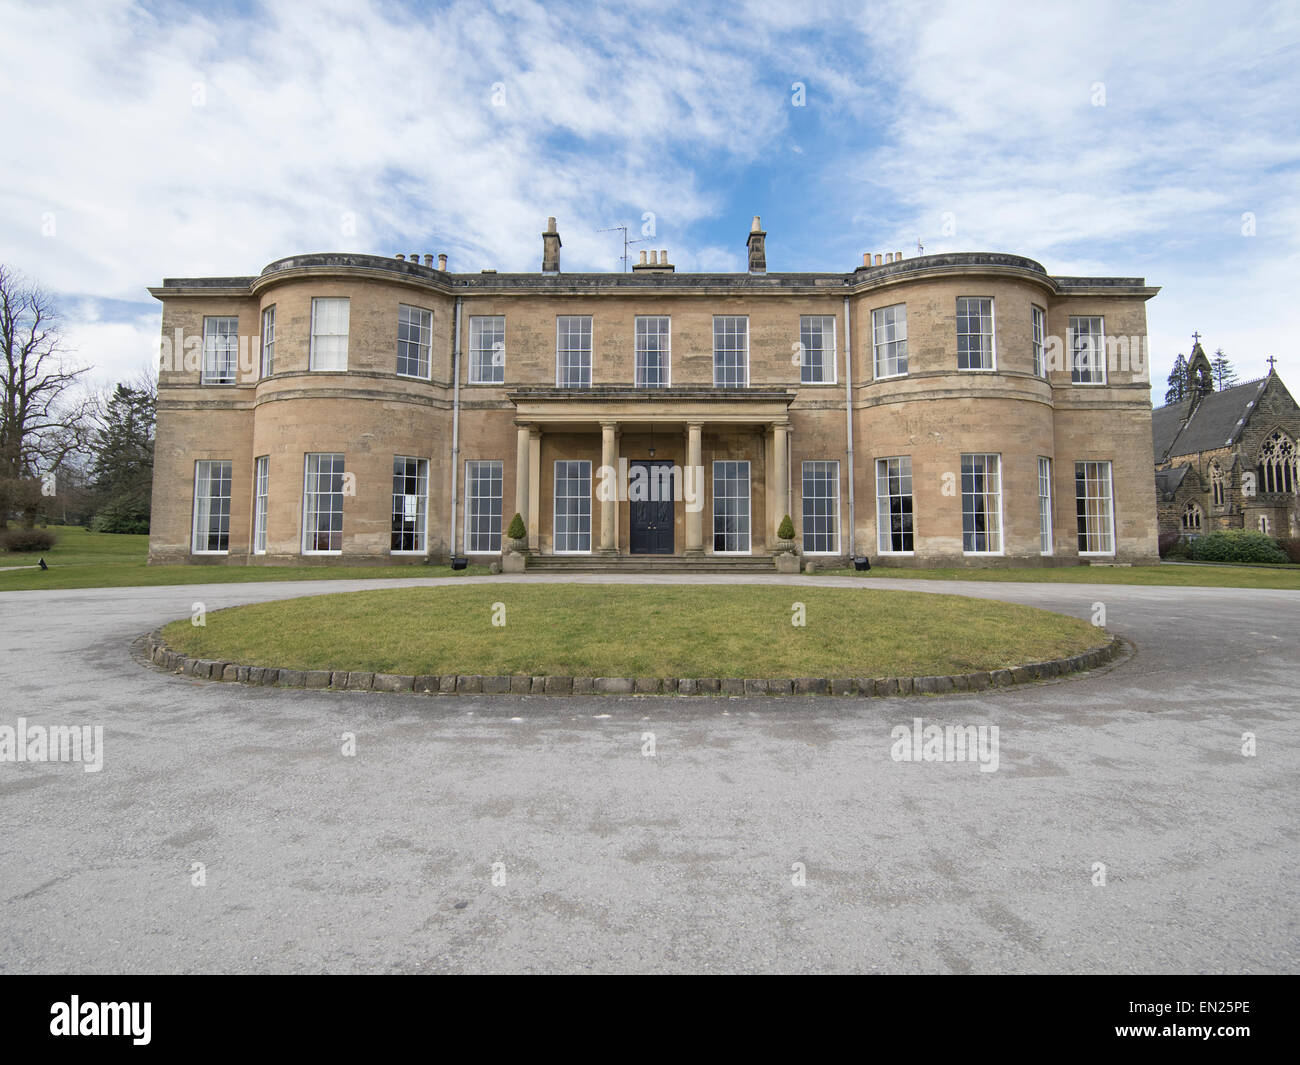 Rudding Park Hotel, a  Grade I listed Regency-style country house in Harrogate, North Yorkshire, England. Stock Photo